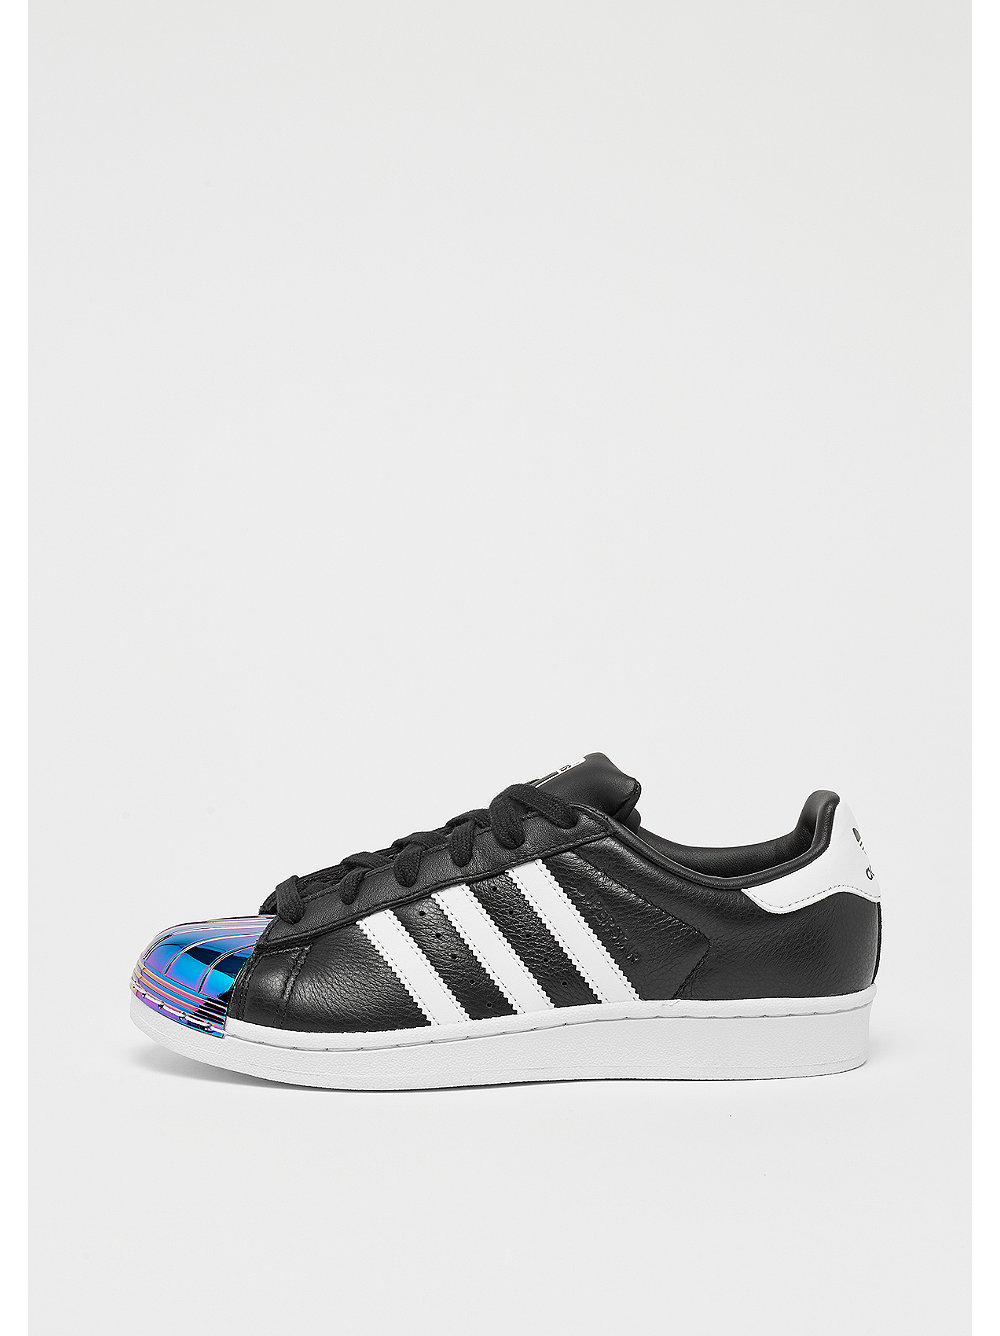 adidas Superstar Metal Toe core black-white-supplier colour